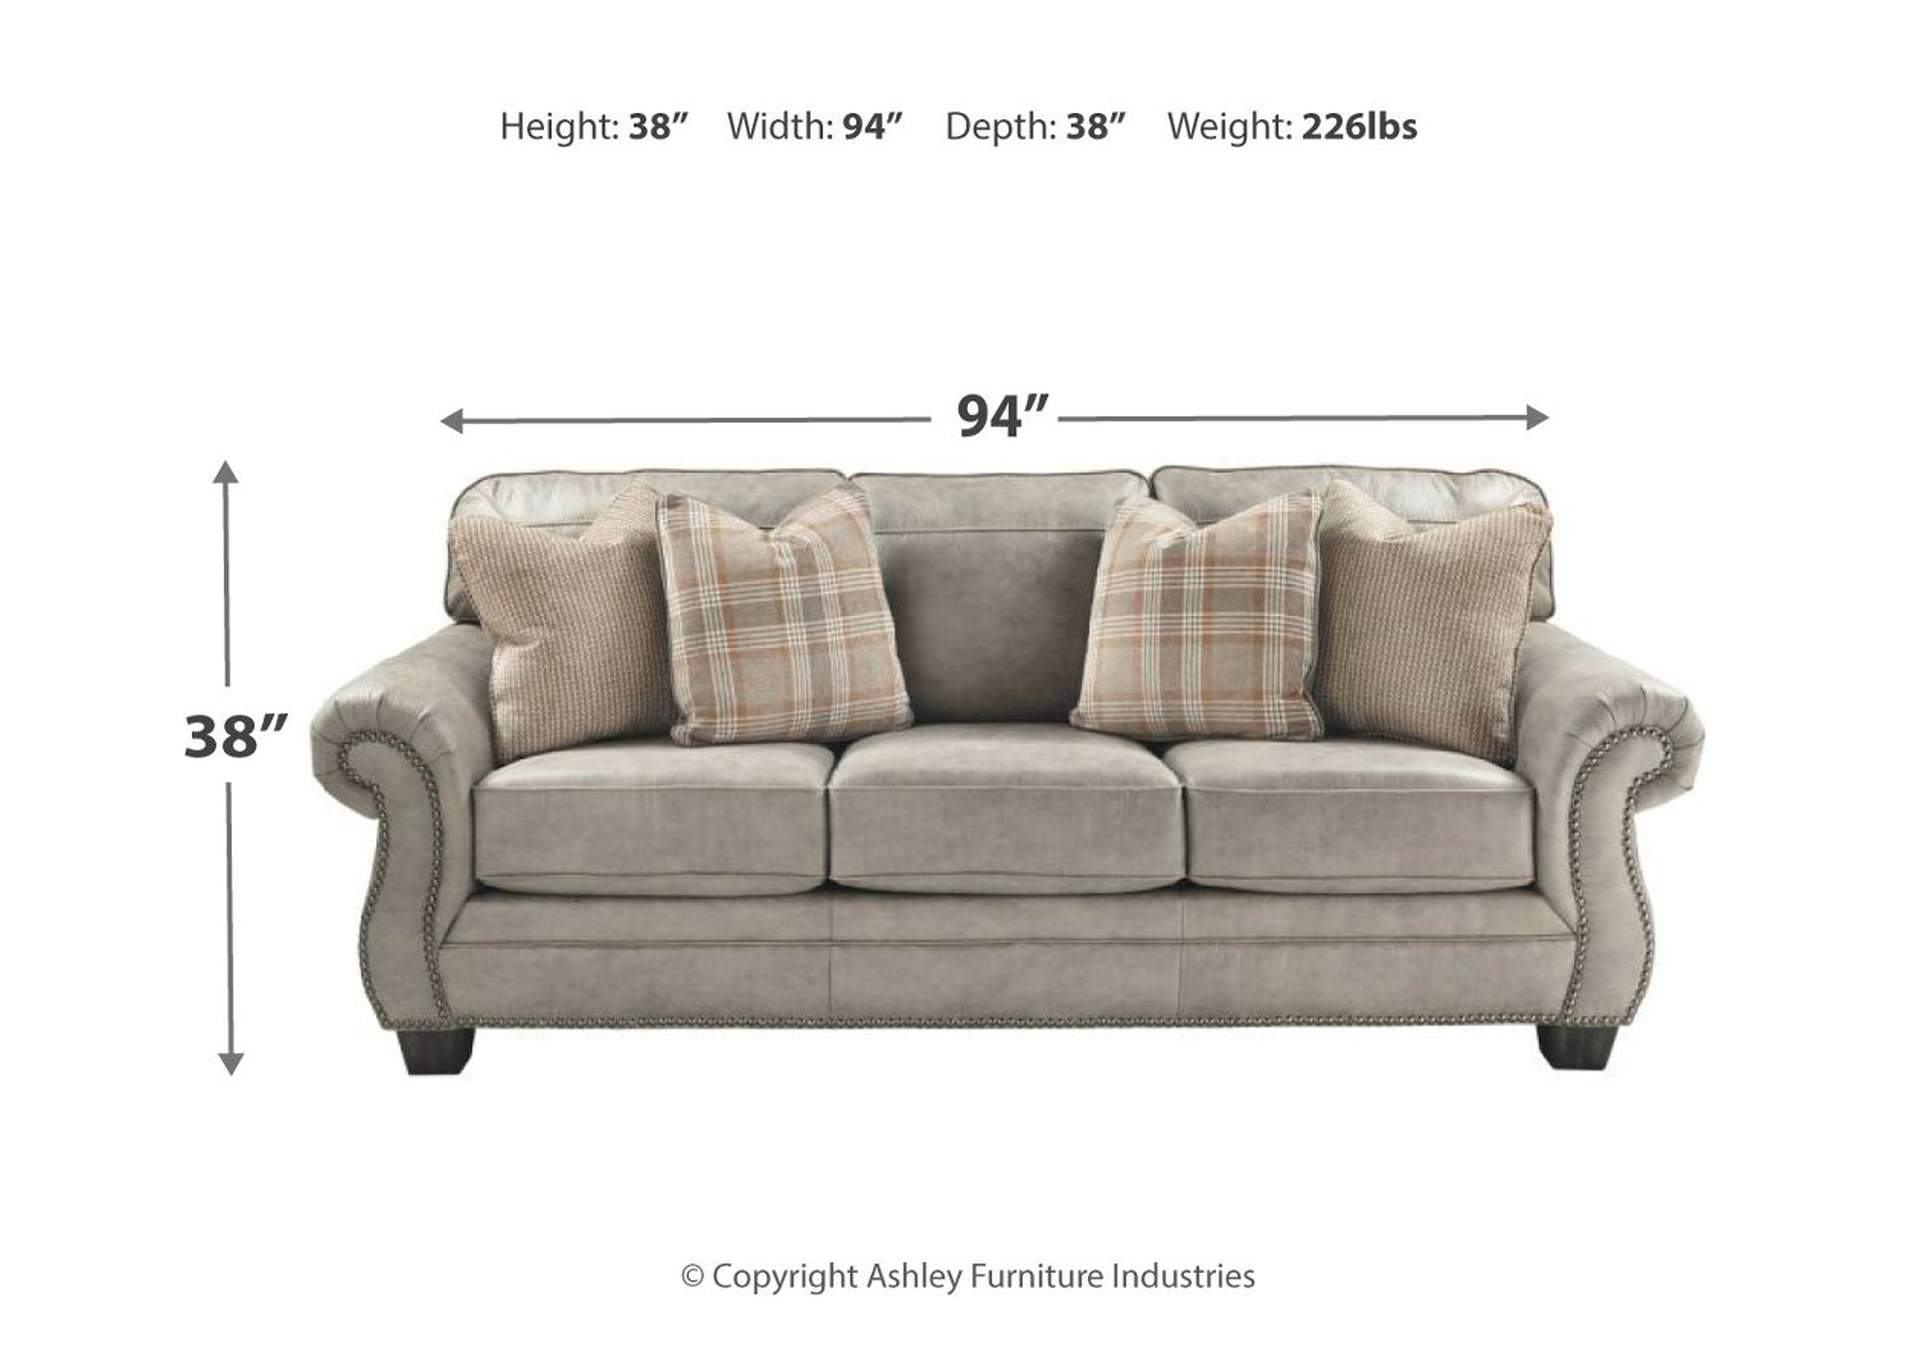 Olsberg Steel Queen Sofa Sleeper,Signature Design By Ashley